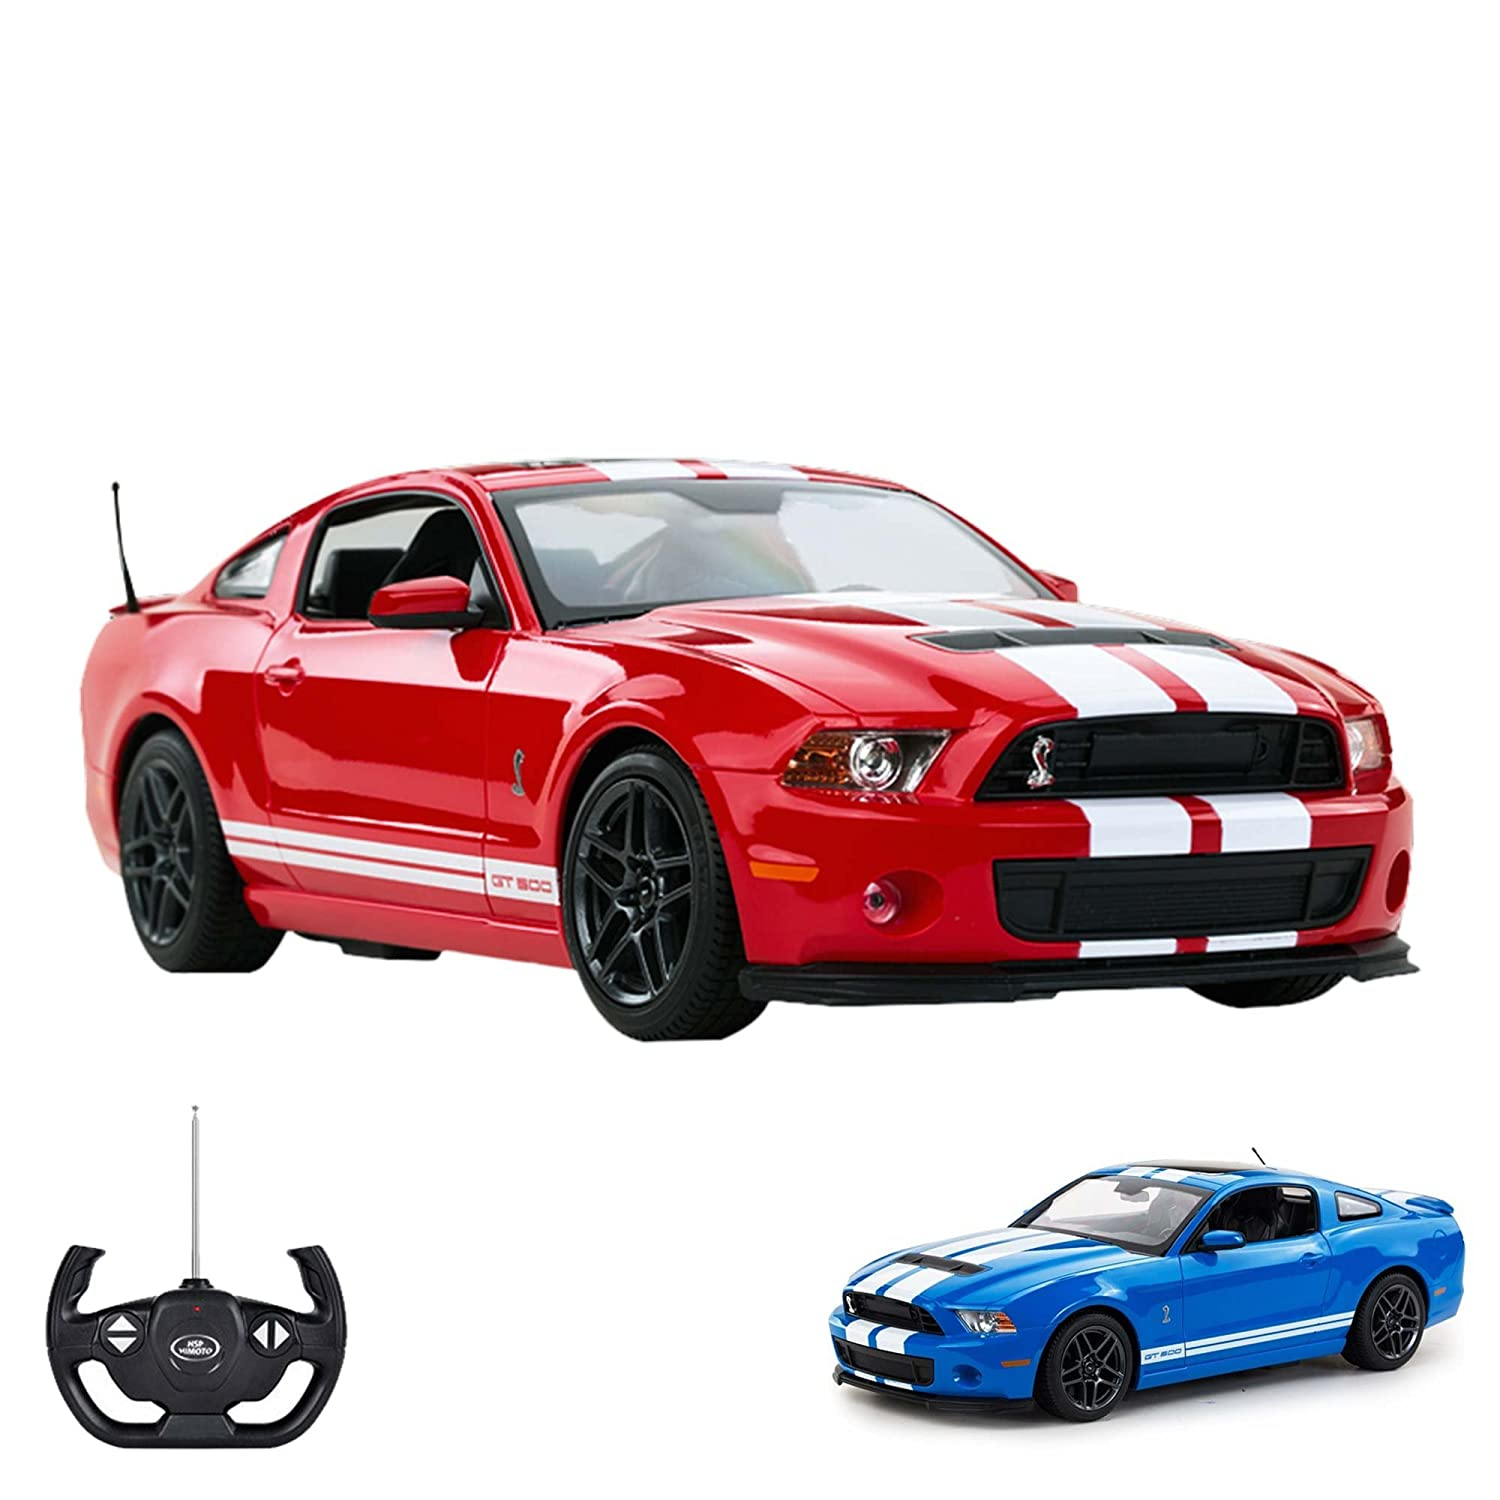 Ford mustang shelby gt500 rc licensed car model scale 114 ready to drive includesremote control amazon co uk toys games